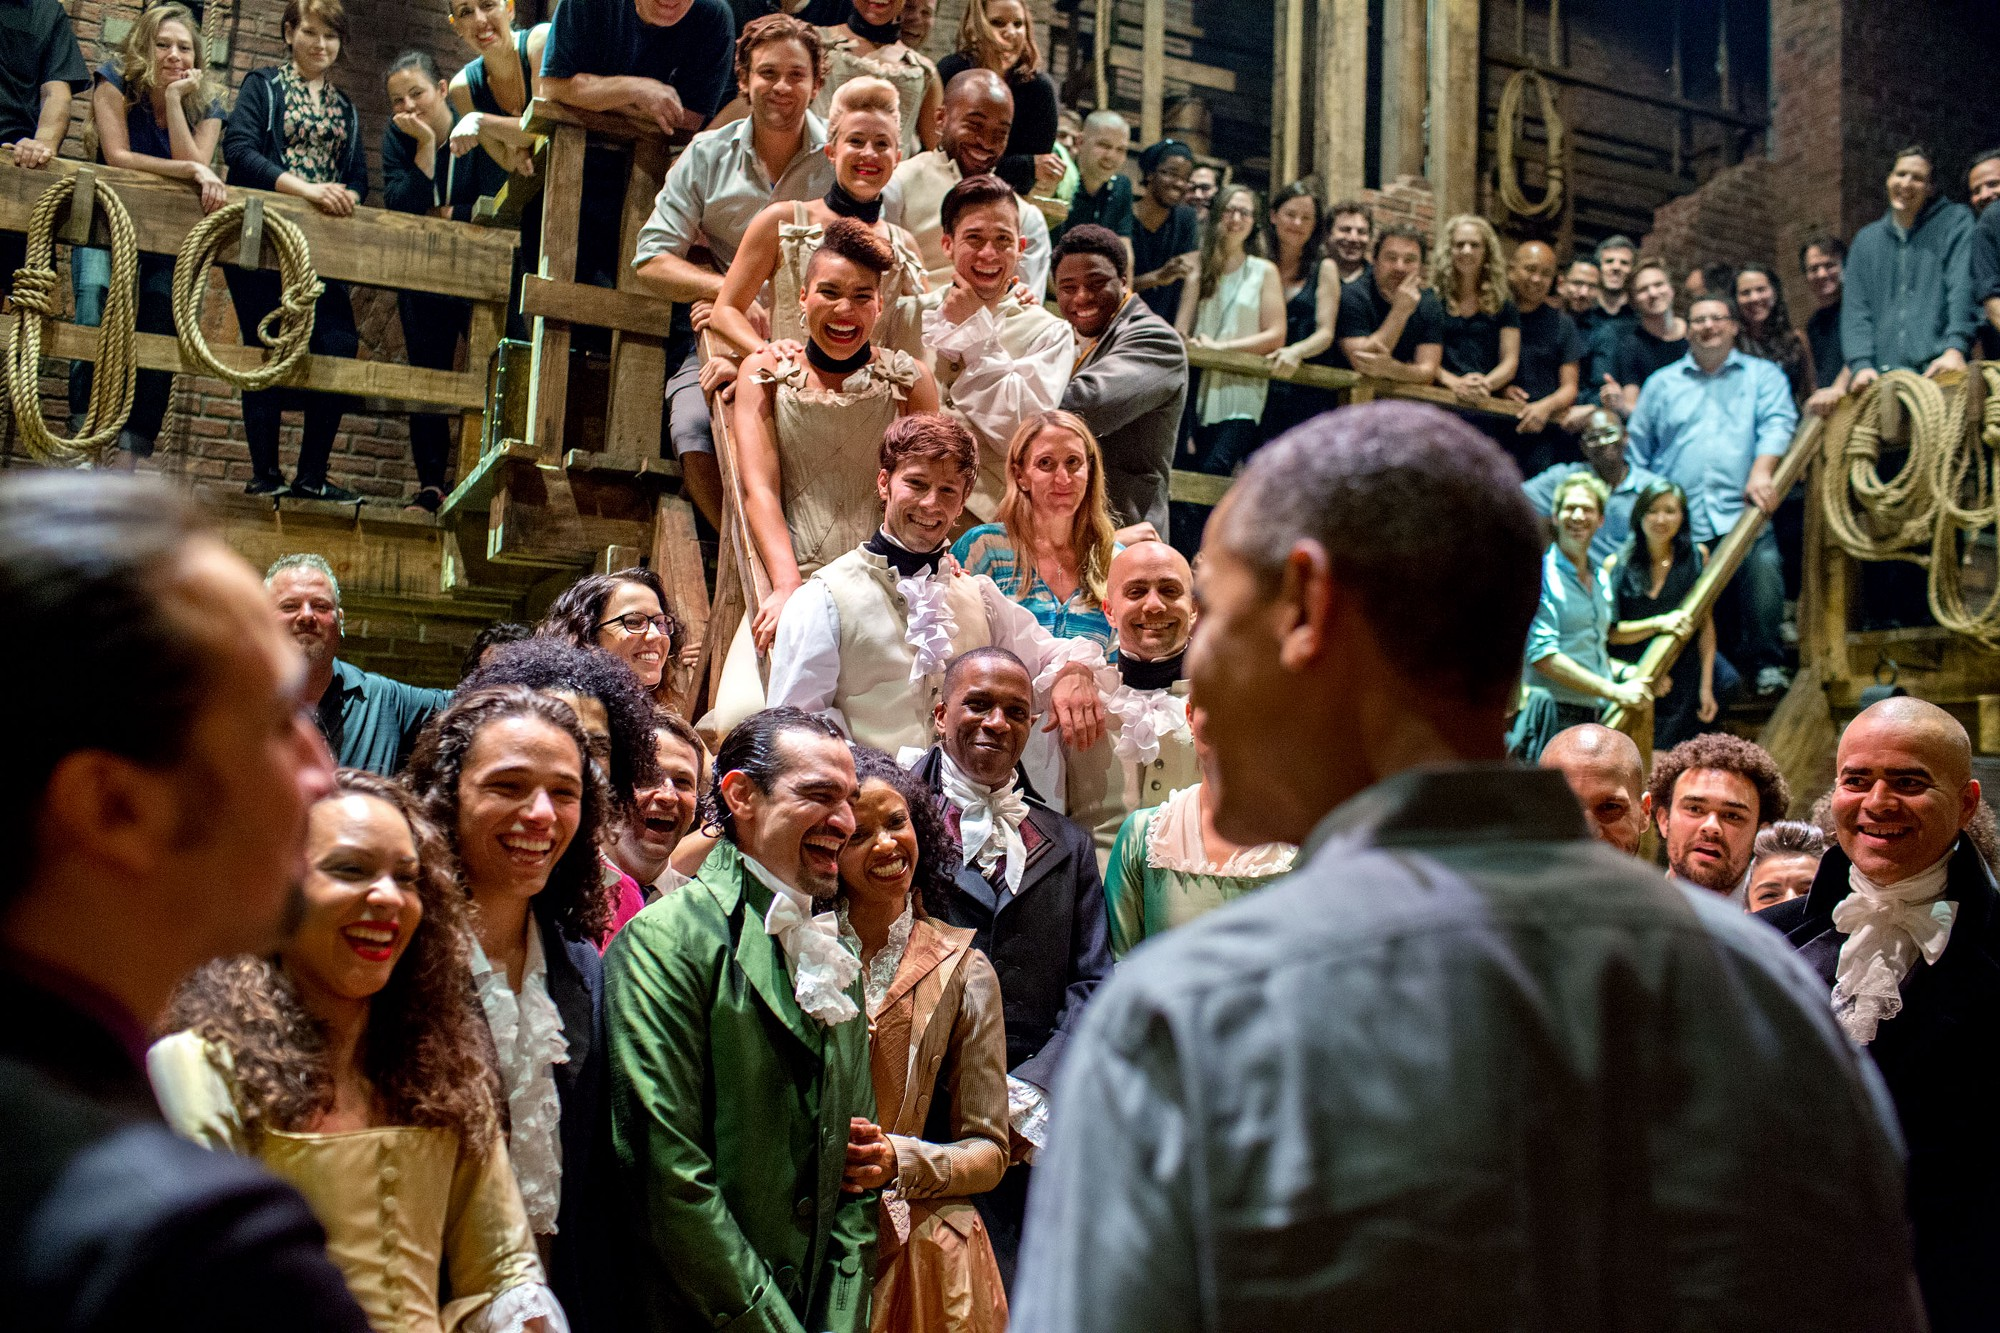 "July 18, 2015 ""The President greets the cast and crew of 'Hamilton' after seeing the play with his daughters at the Richard Rodgers Theatre in New York City."" (Official White House Photo by Pete Souza)"